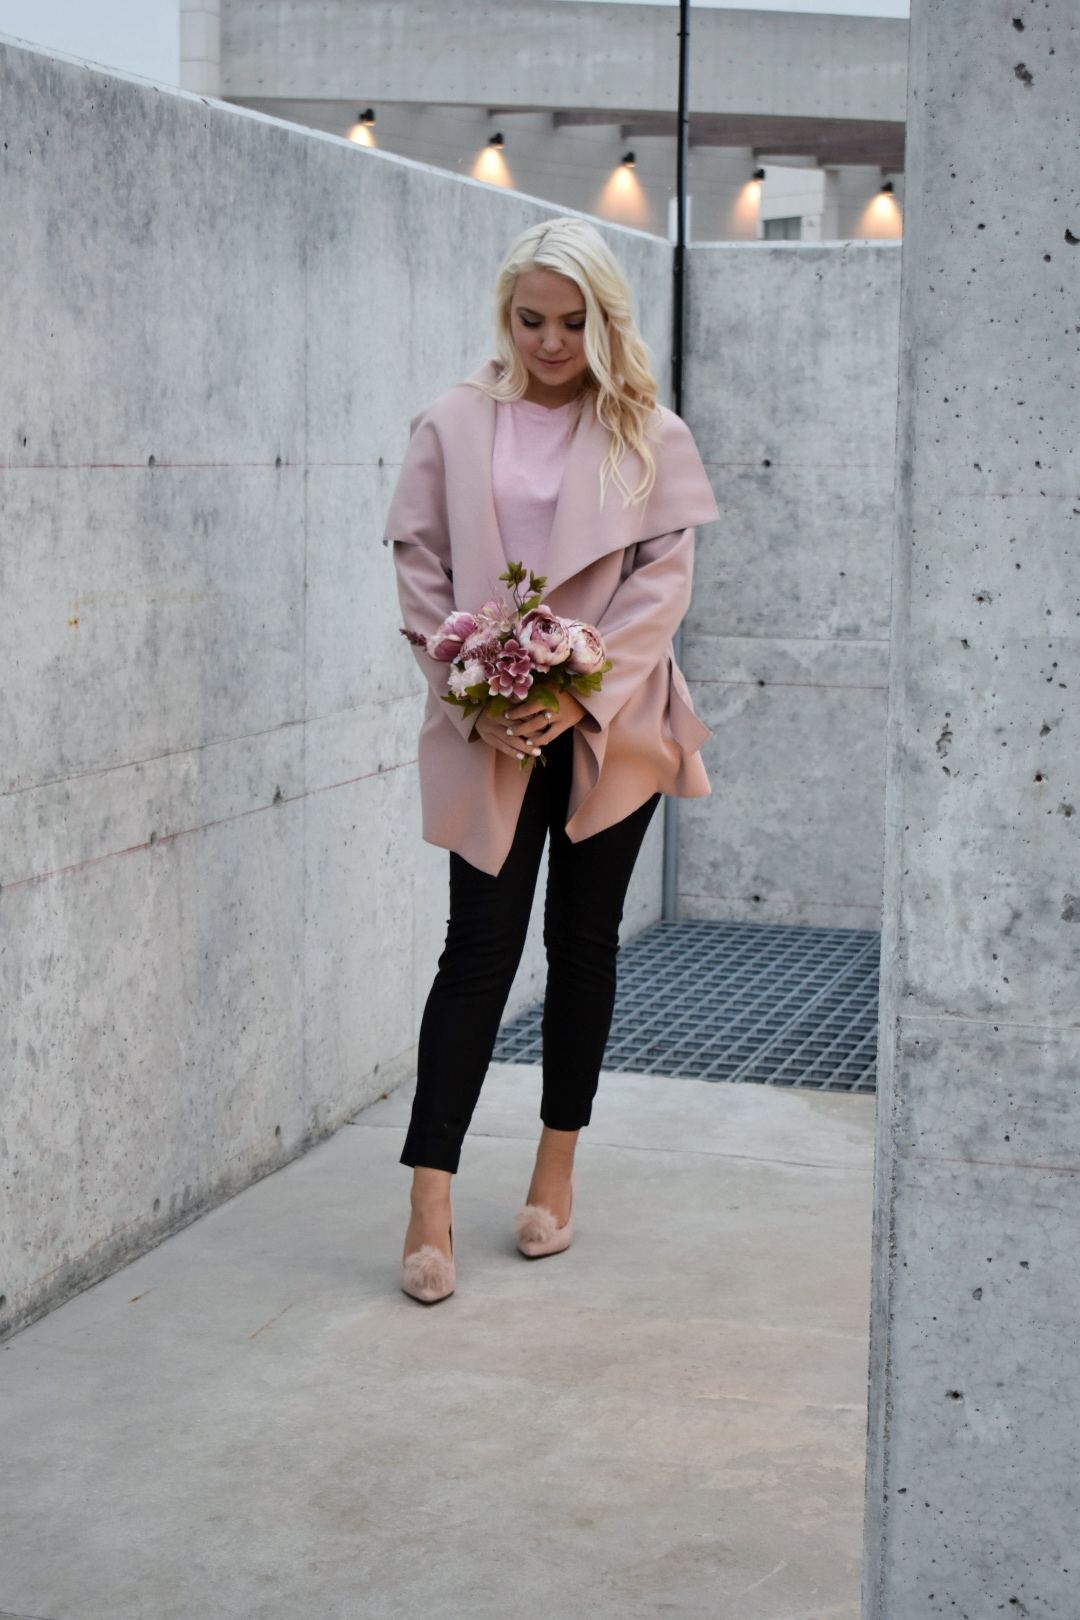 A Romantic Valentines Date Outfit – Pretty Lovely in Pink